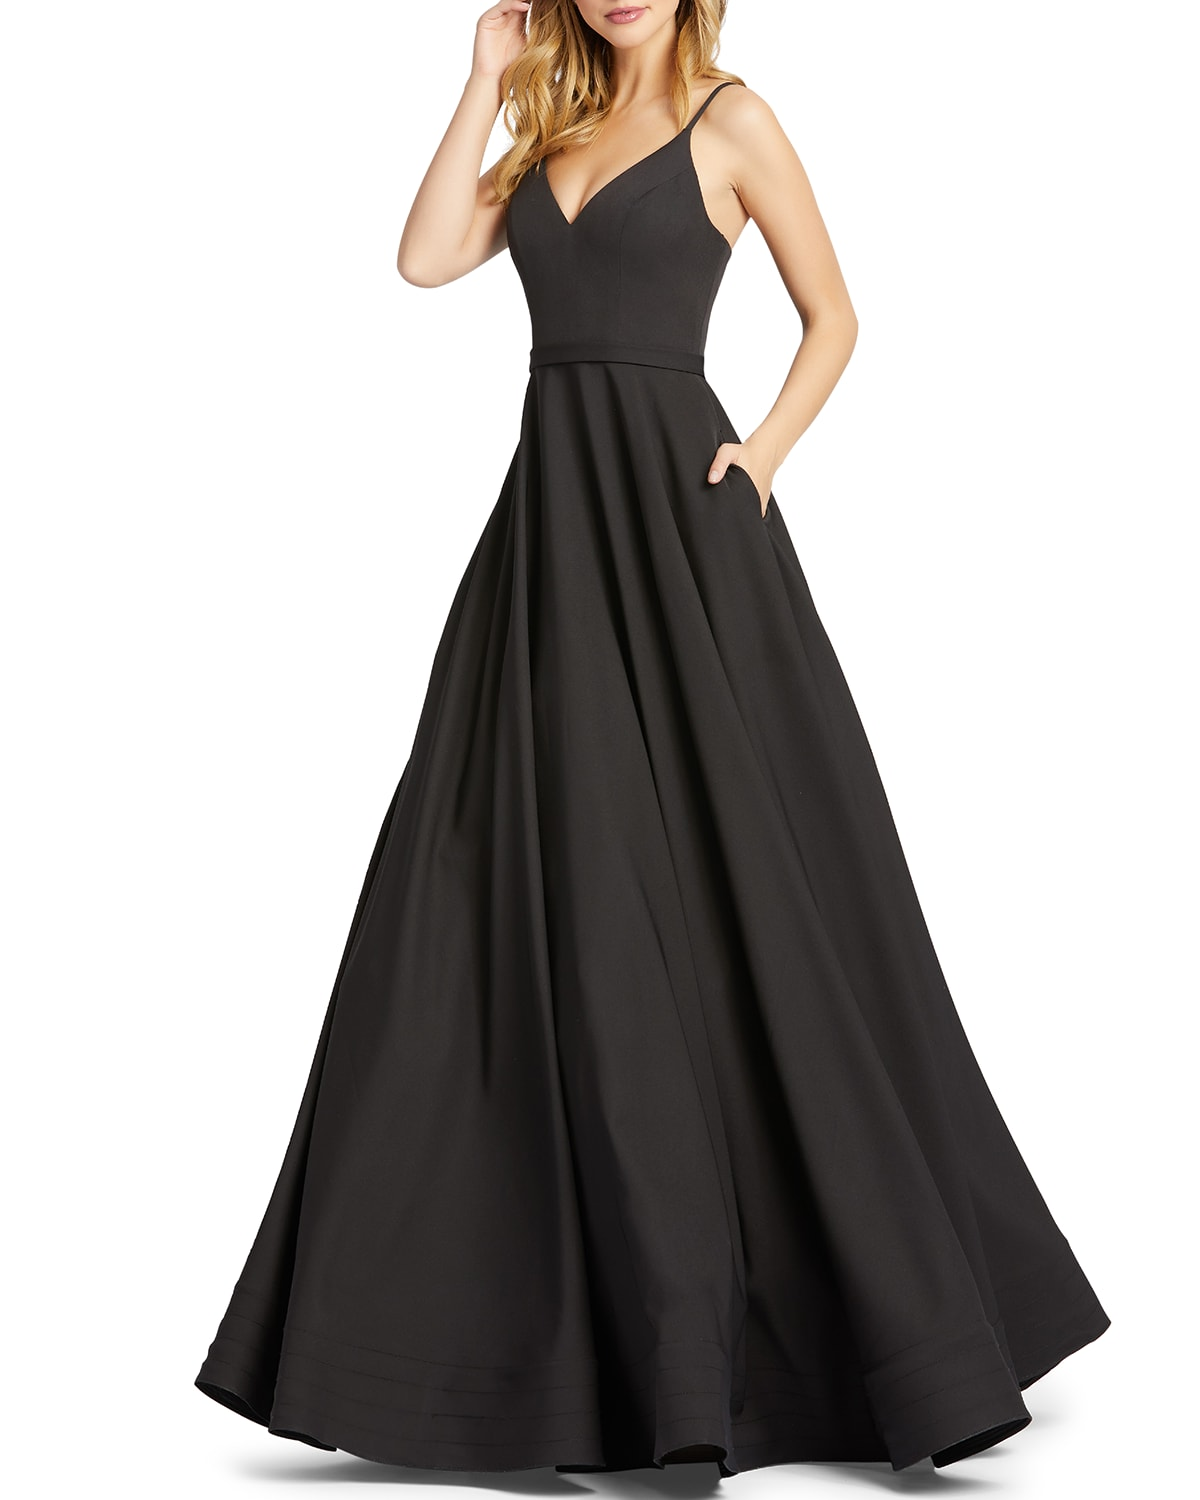 Sweetheart Ball Gown with Pockets